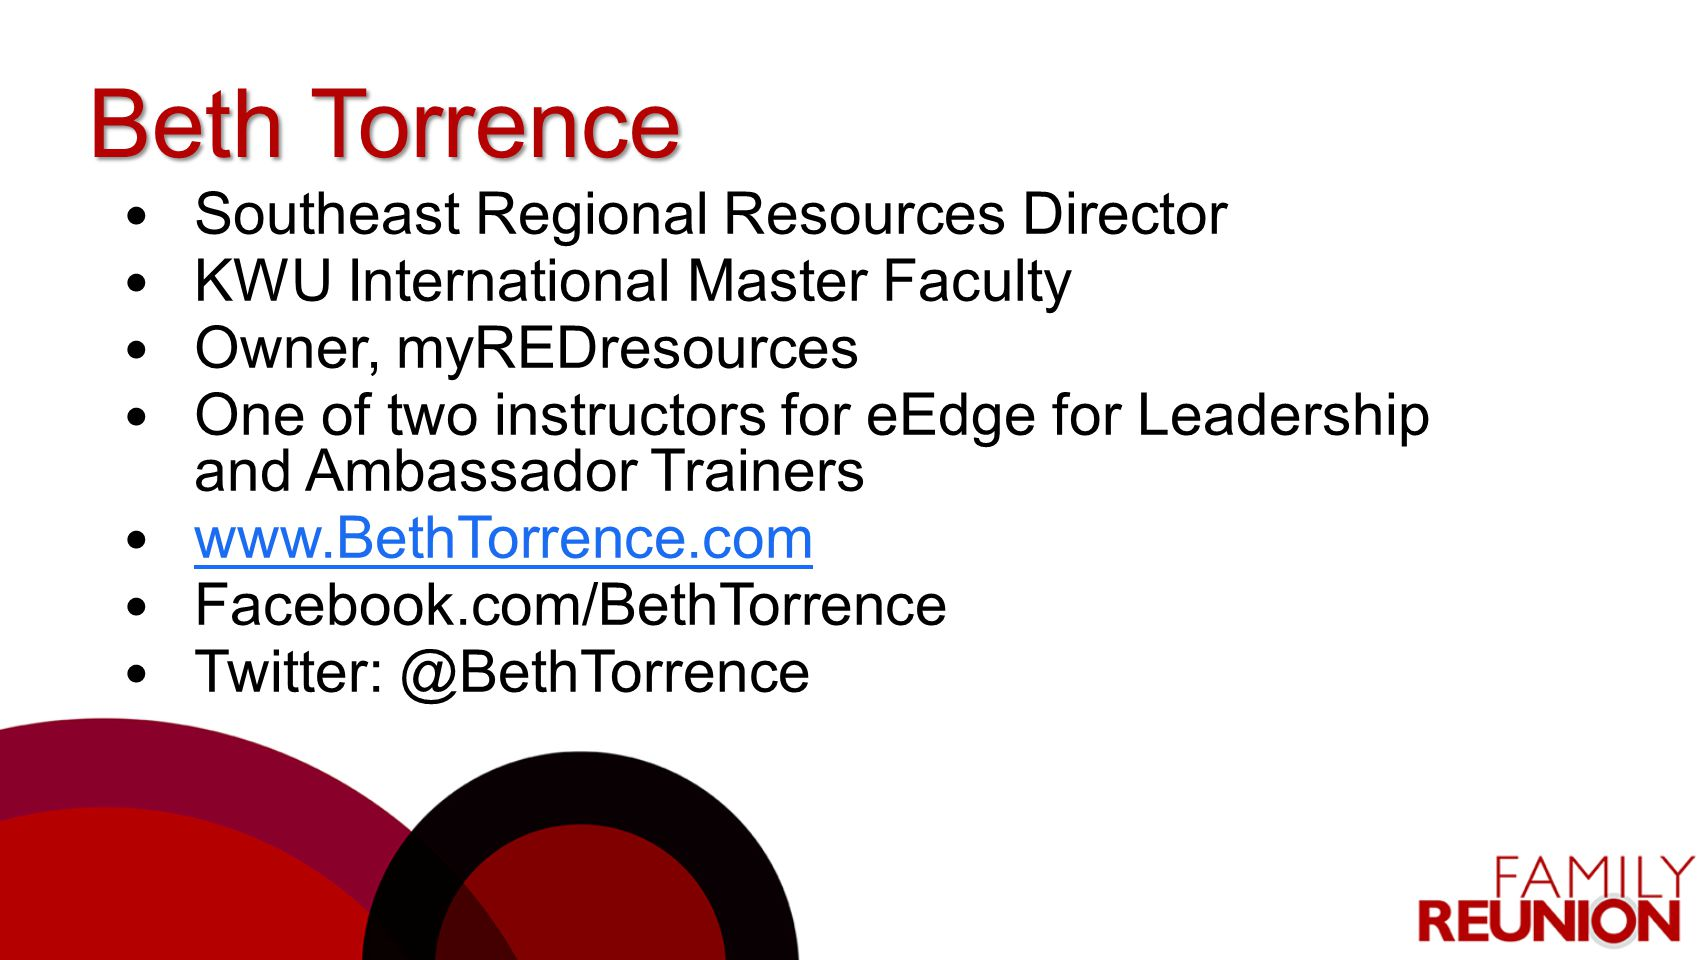 Beth Torrence Southeast Regional Resources Director